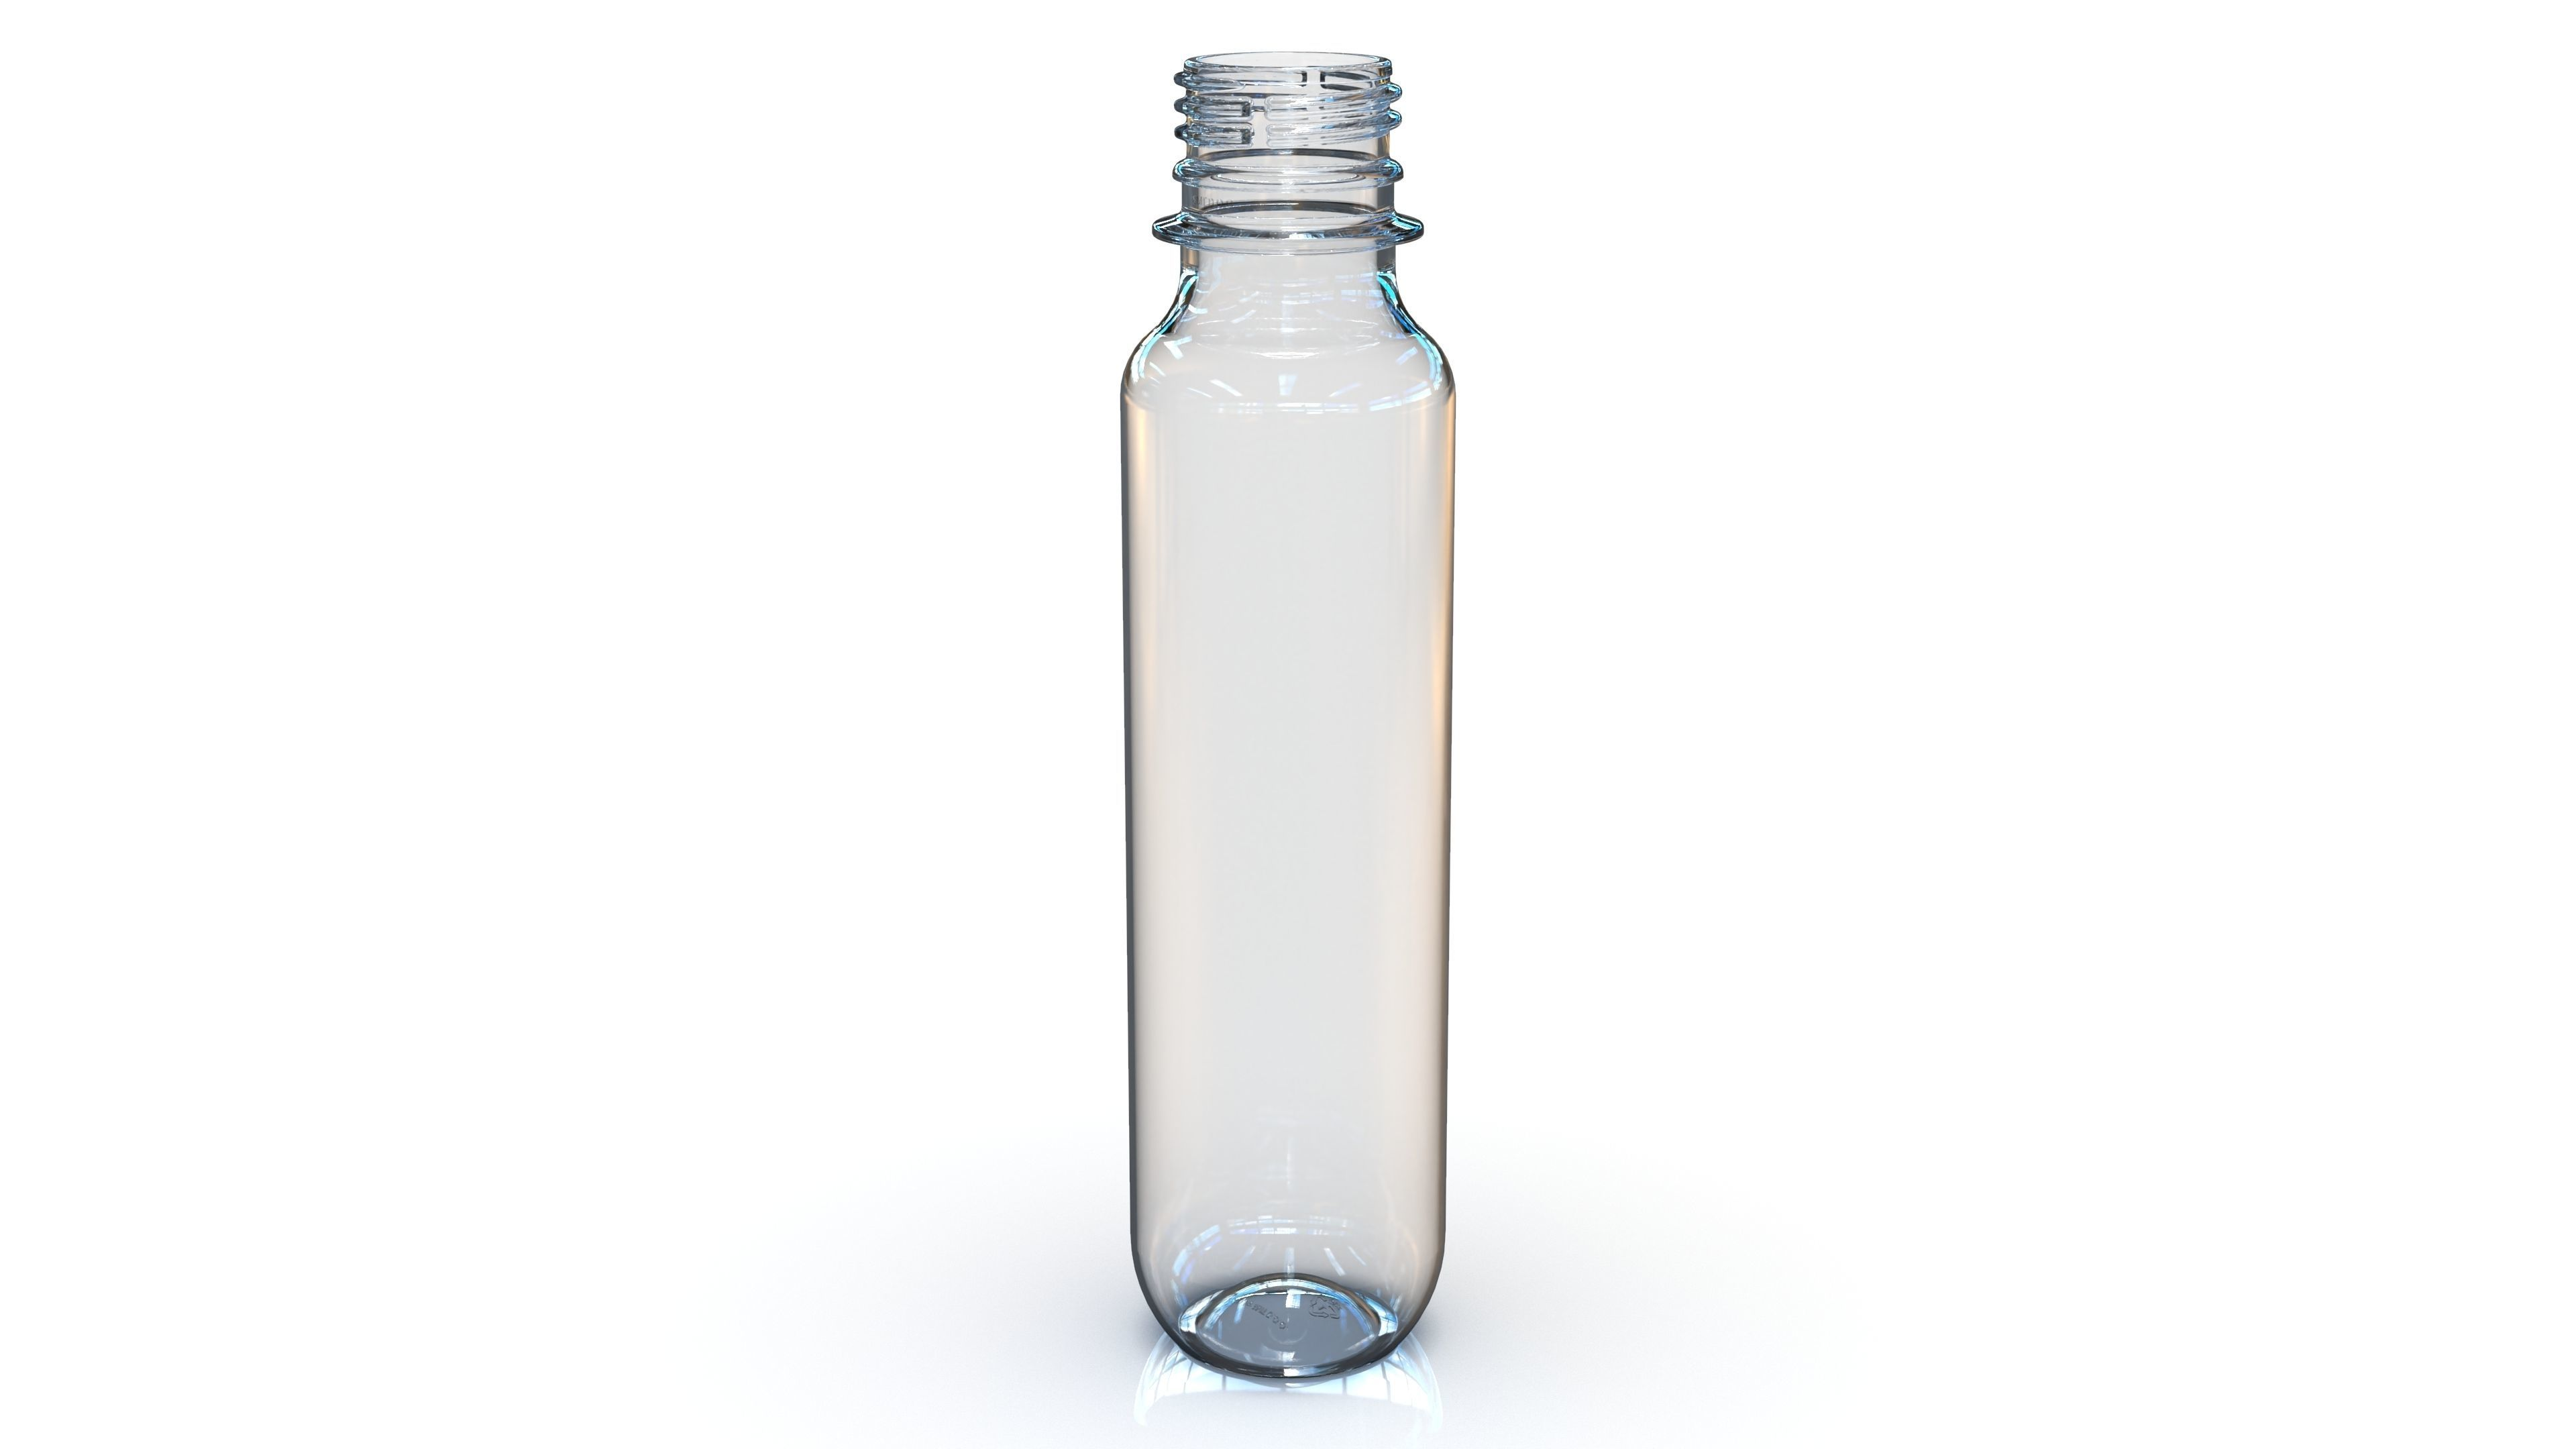 PET Bottle PCO - 1810 - 28 mm 150 mL - for water - drinks - etc